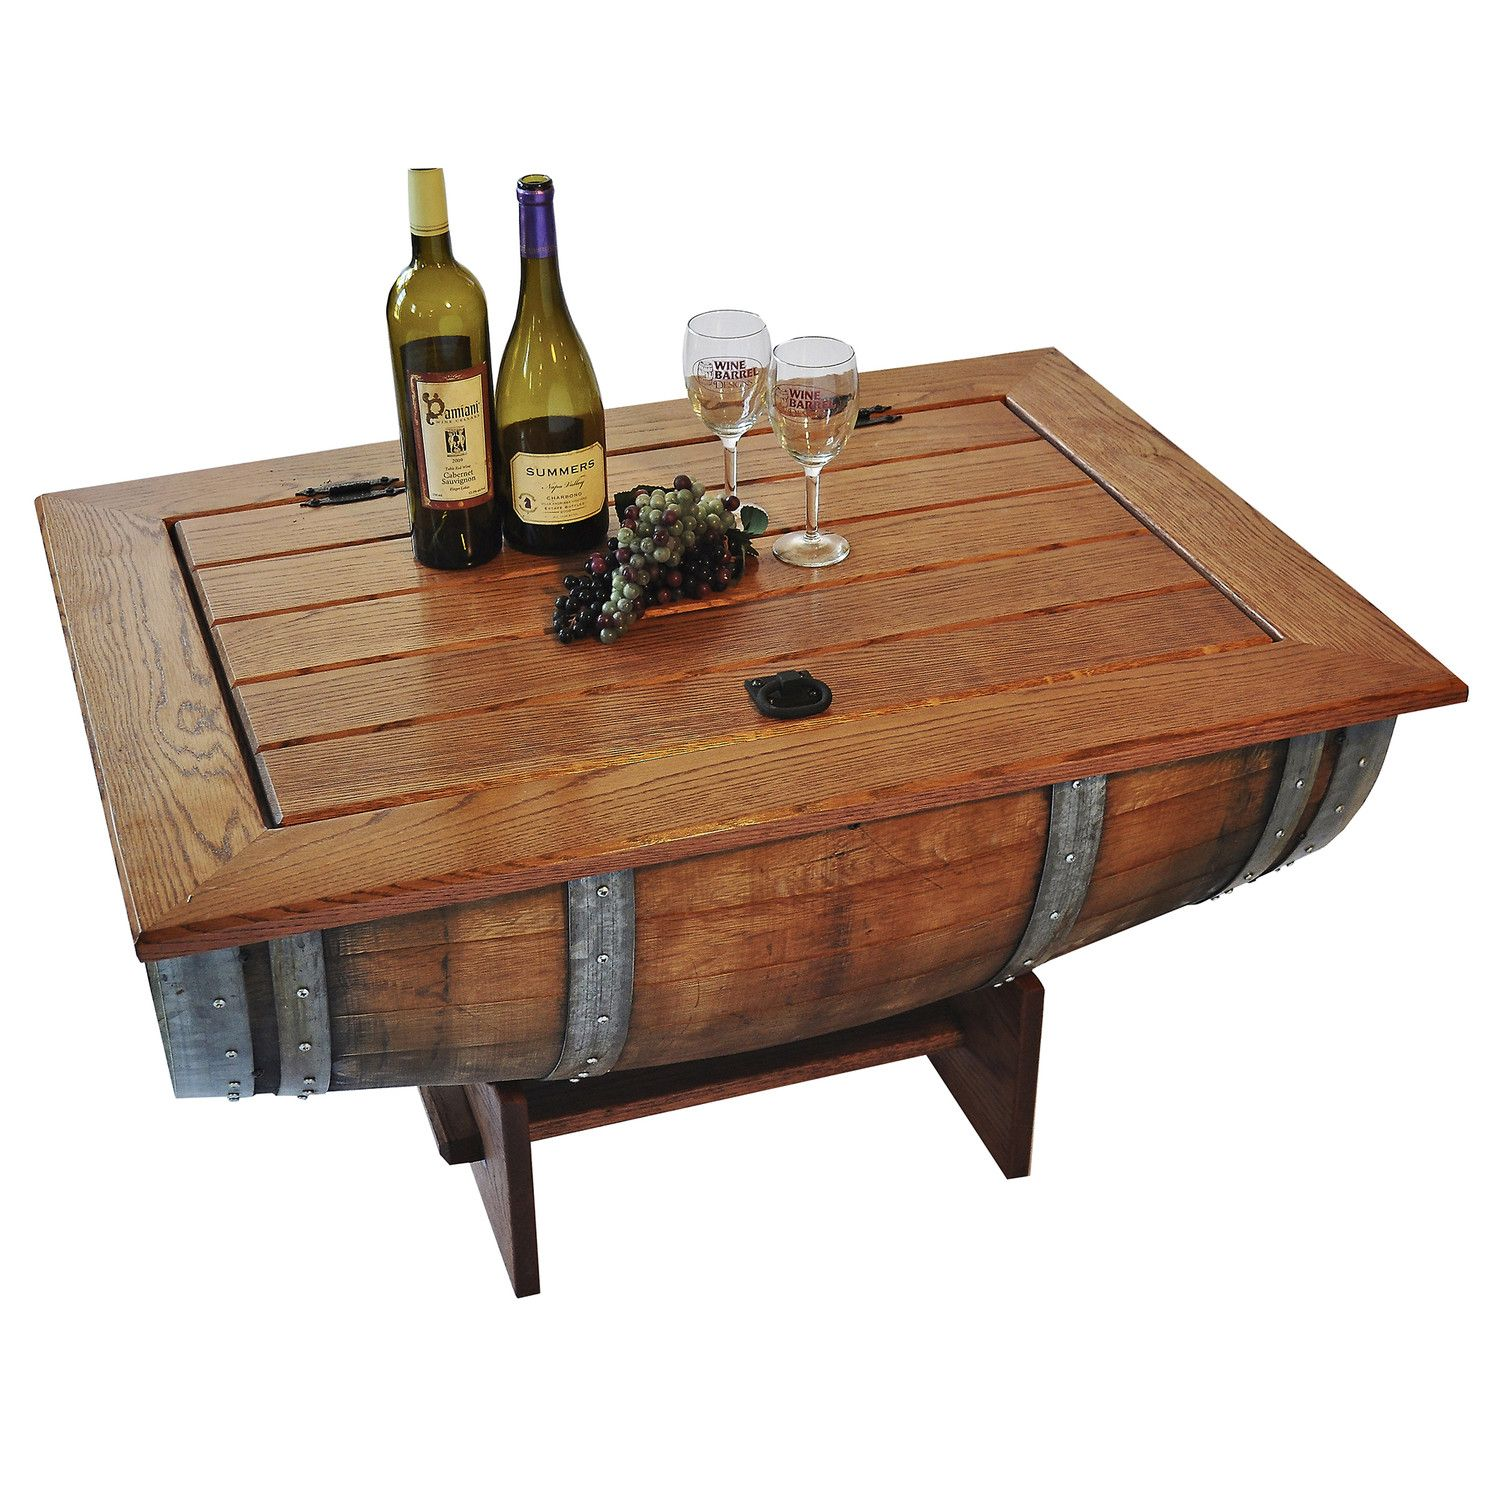 Napa East Collection Wine Barrel Coffee Table Gorgeous Diy Wine